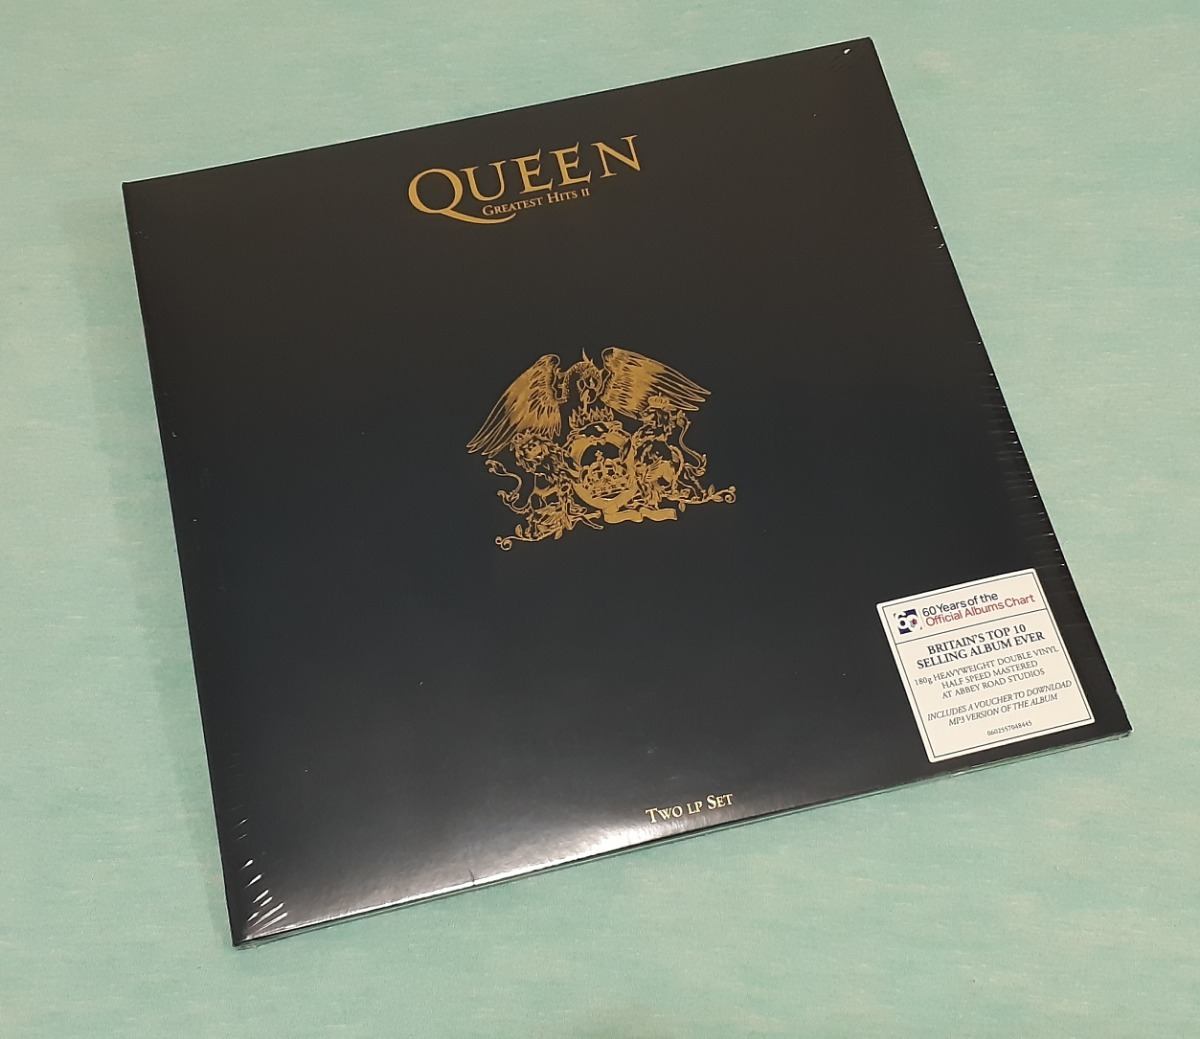 4b688a22b queen greatest hits ii 2 lp vinil duplo importado europeu. Carregando zoom.